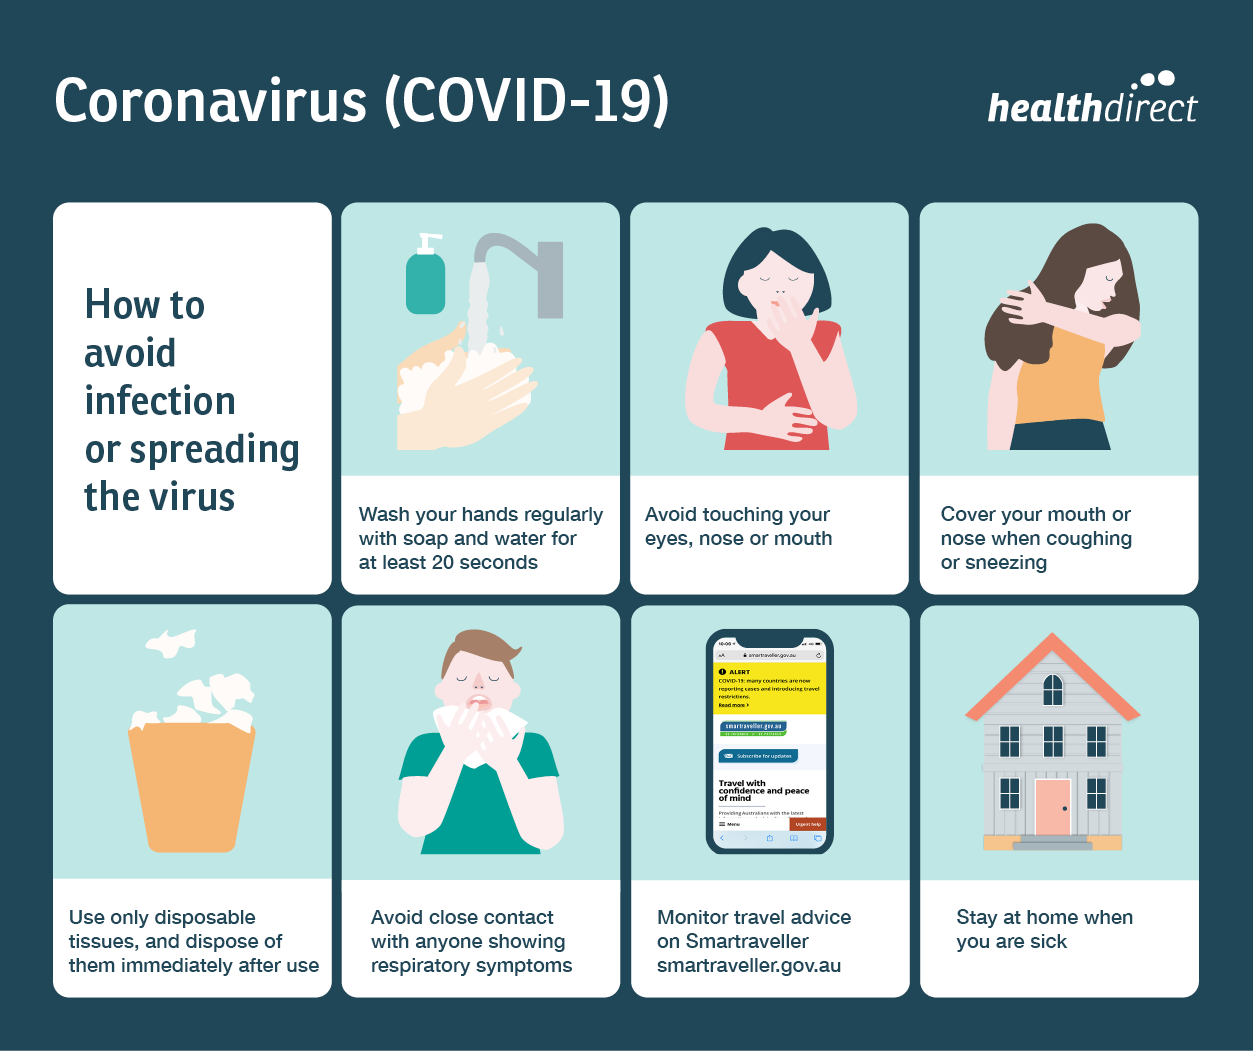 How to avoid infection or spreading COVID-19